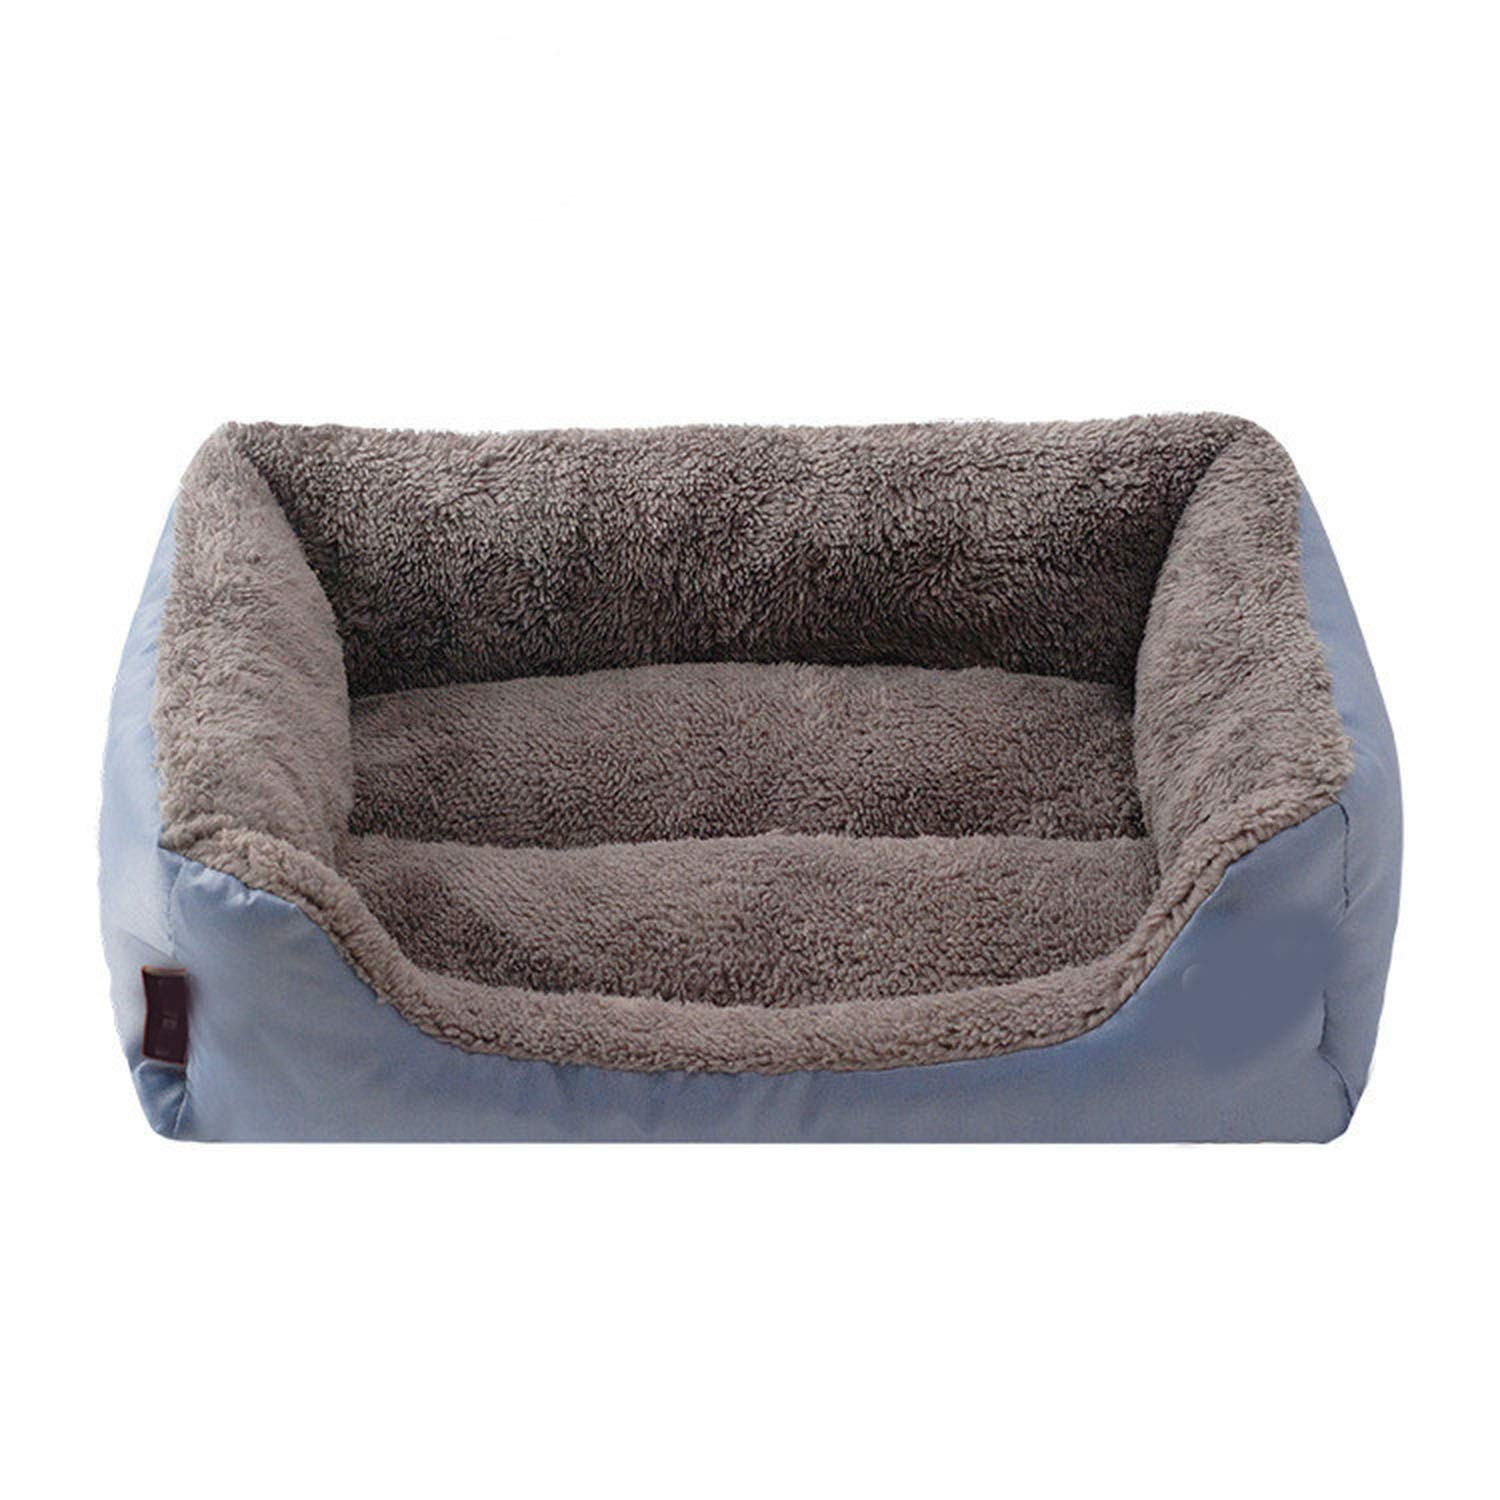 3 58x45x14cmPet Dog Beds for Small Middle Large Dogs House Sofa Kennel Square Pillow Husky for Puppy Cat House Beds Mat,09,68x55x16cm